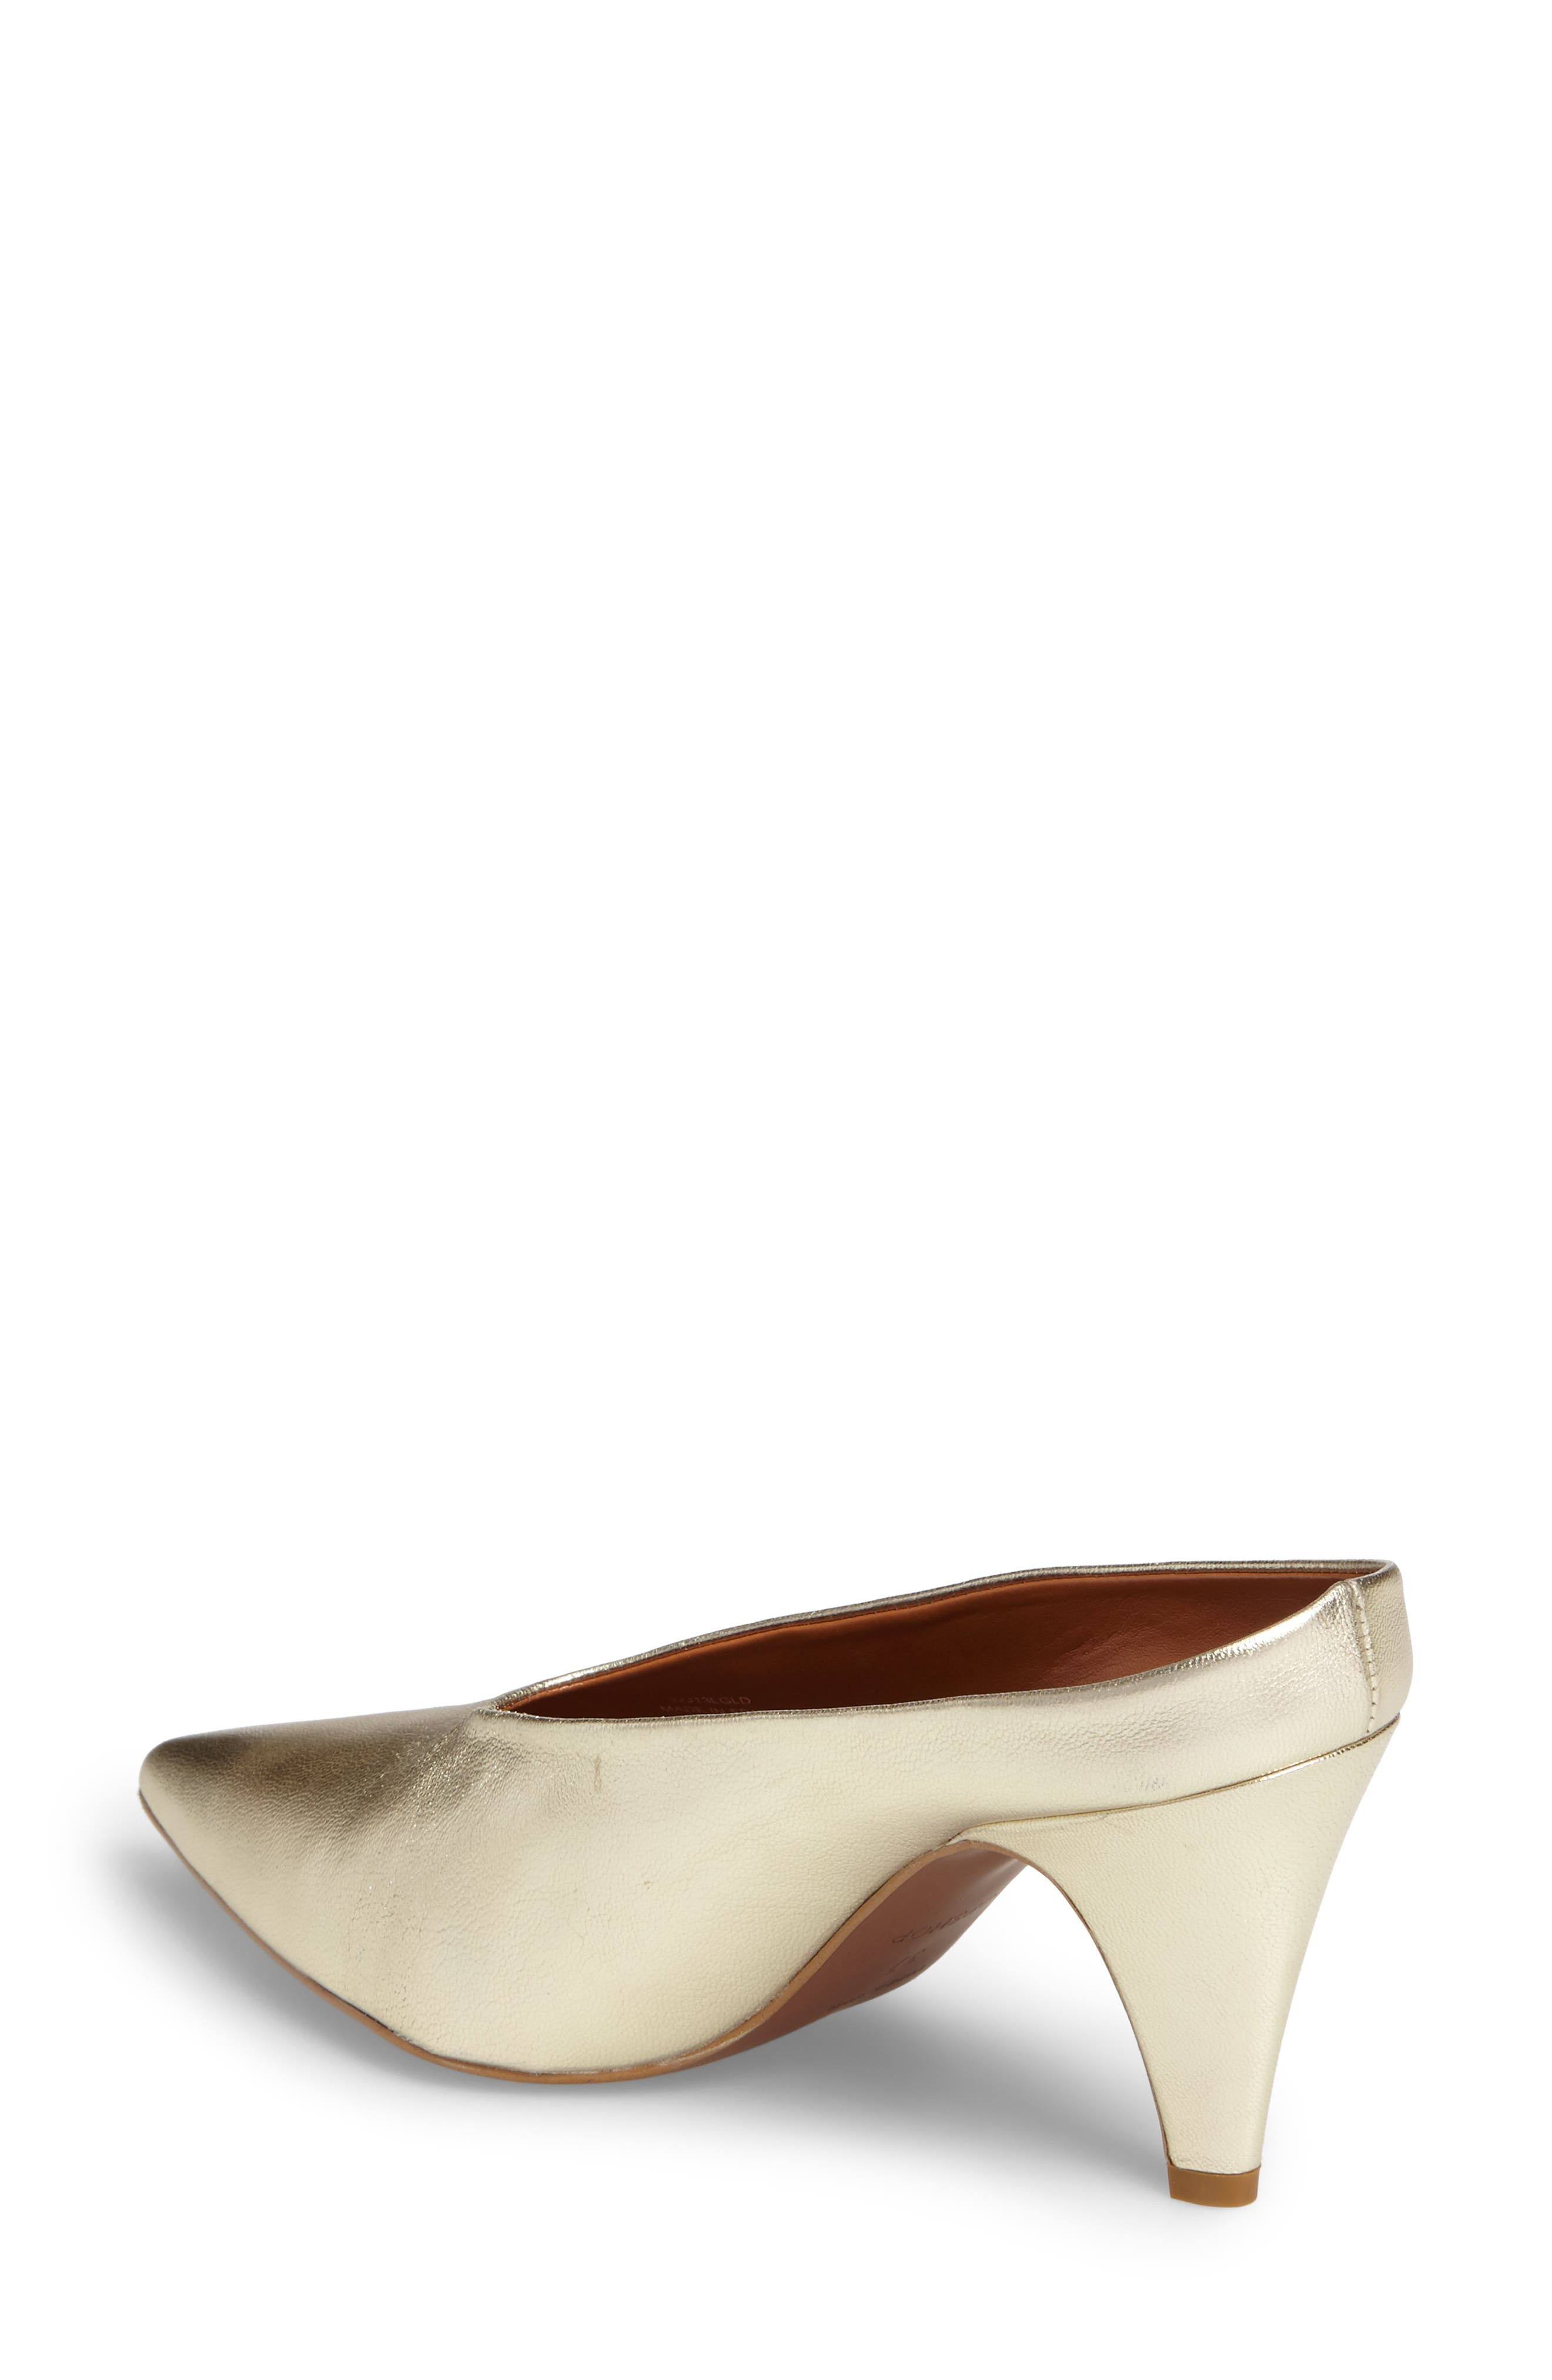 Juicy Pointy Toe Pump,                             Alternate thumbnail 2, color,                             Gold Leather